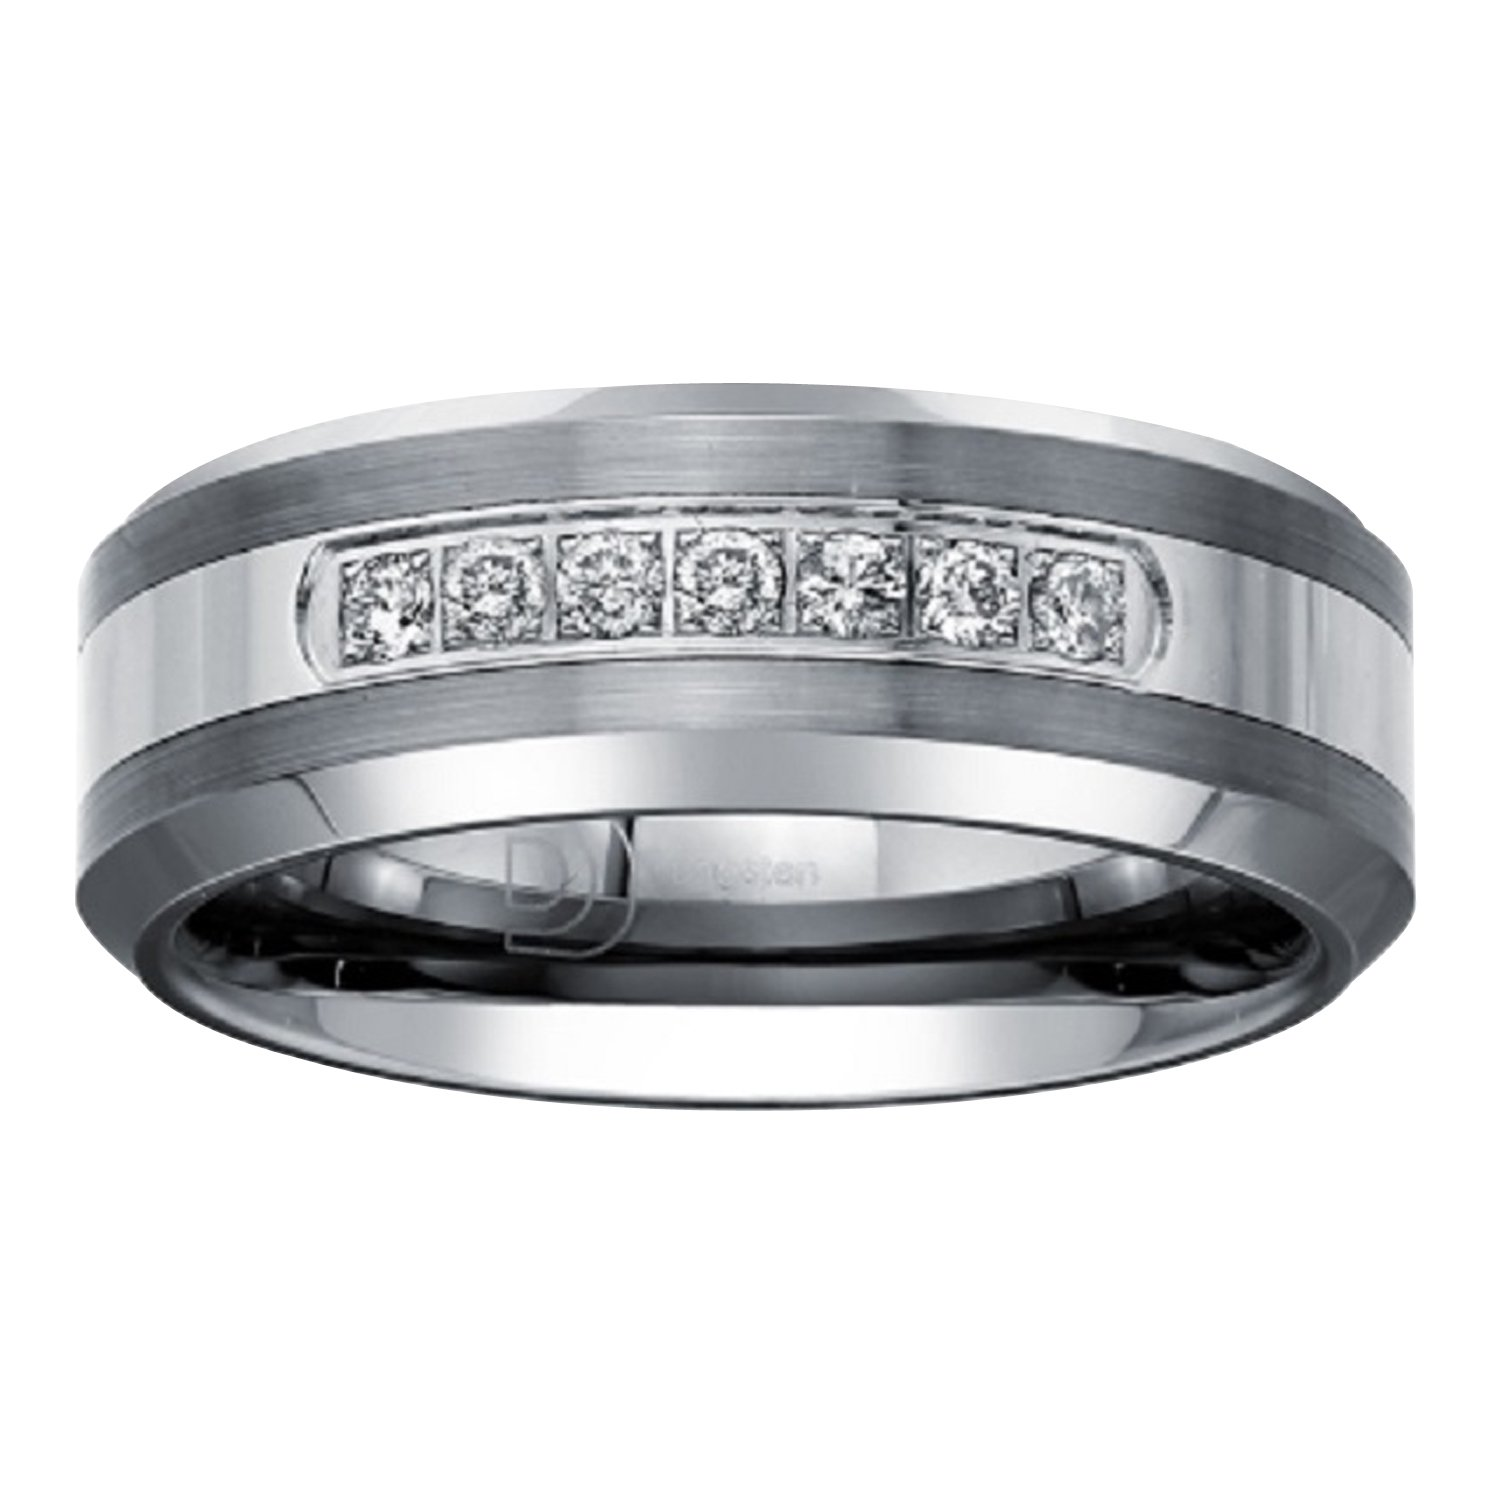 flat triton wedding rings black band fit gray designers around all comfort sapphire fancybox tungsten